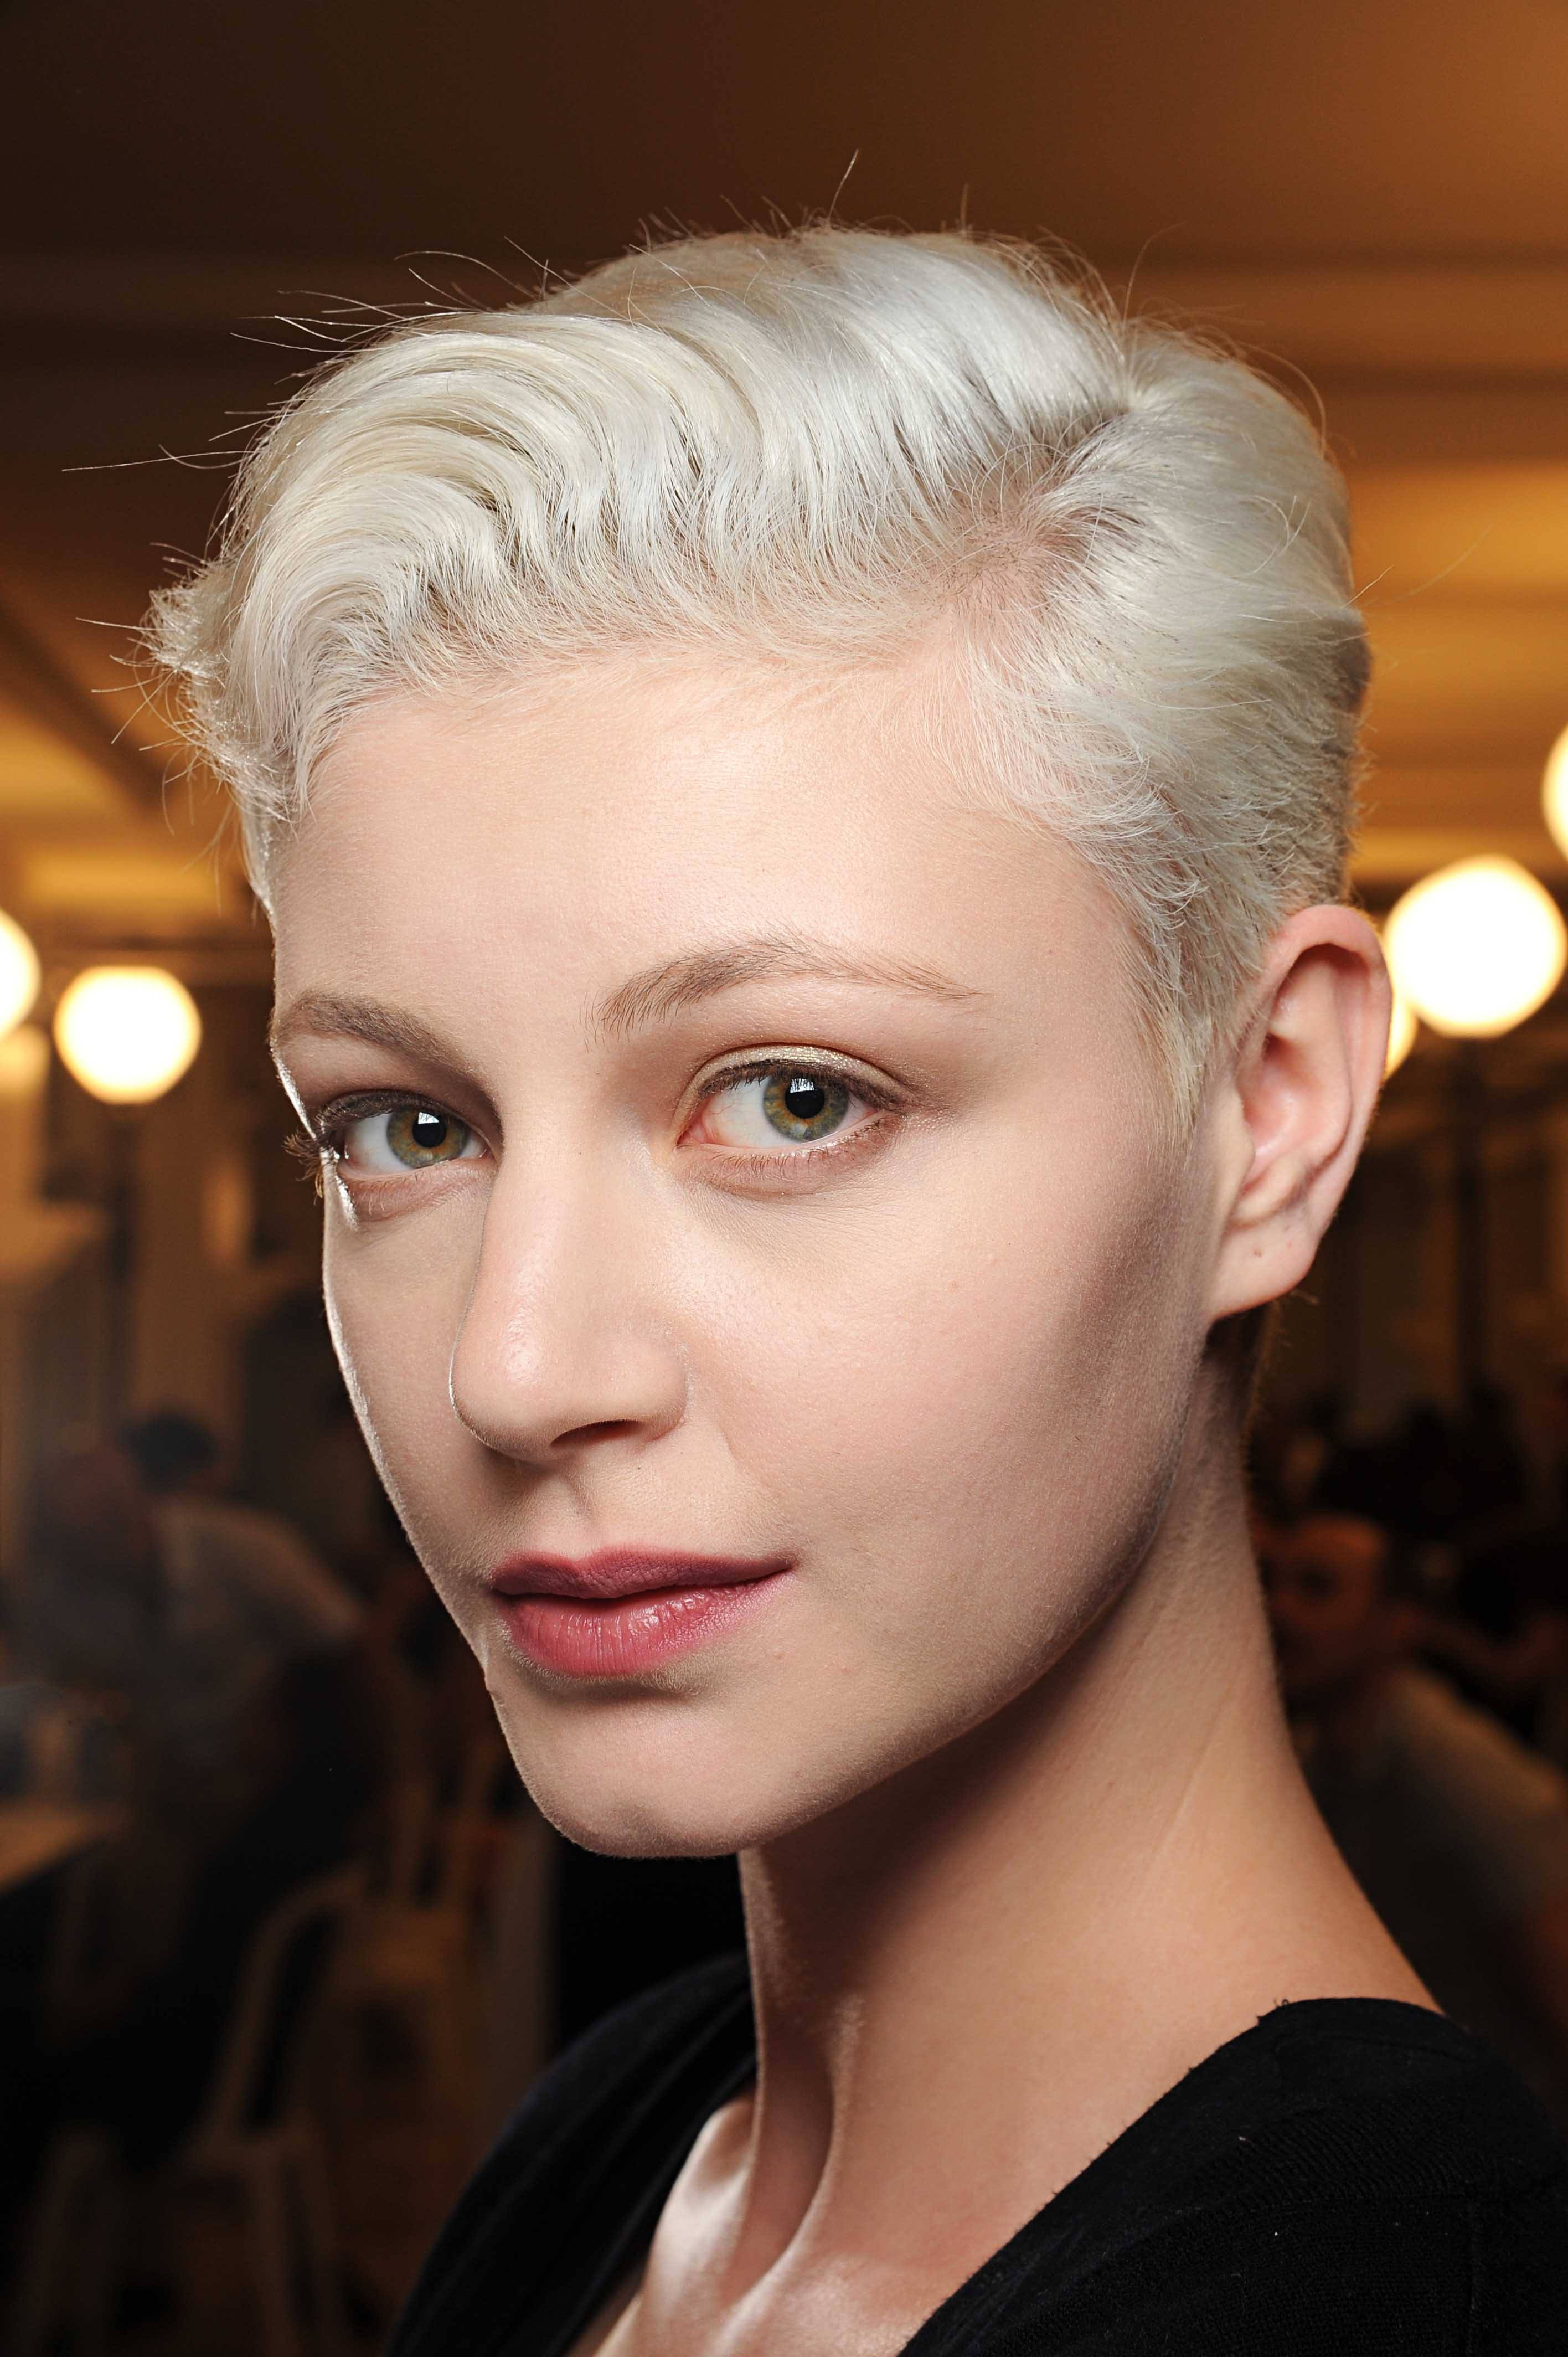 Best haircuts for round faces: All Things Hair - IMAGE - pixie crop volume bleach blonde